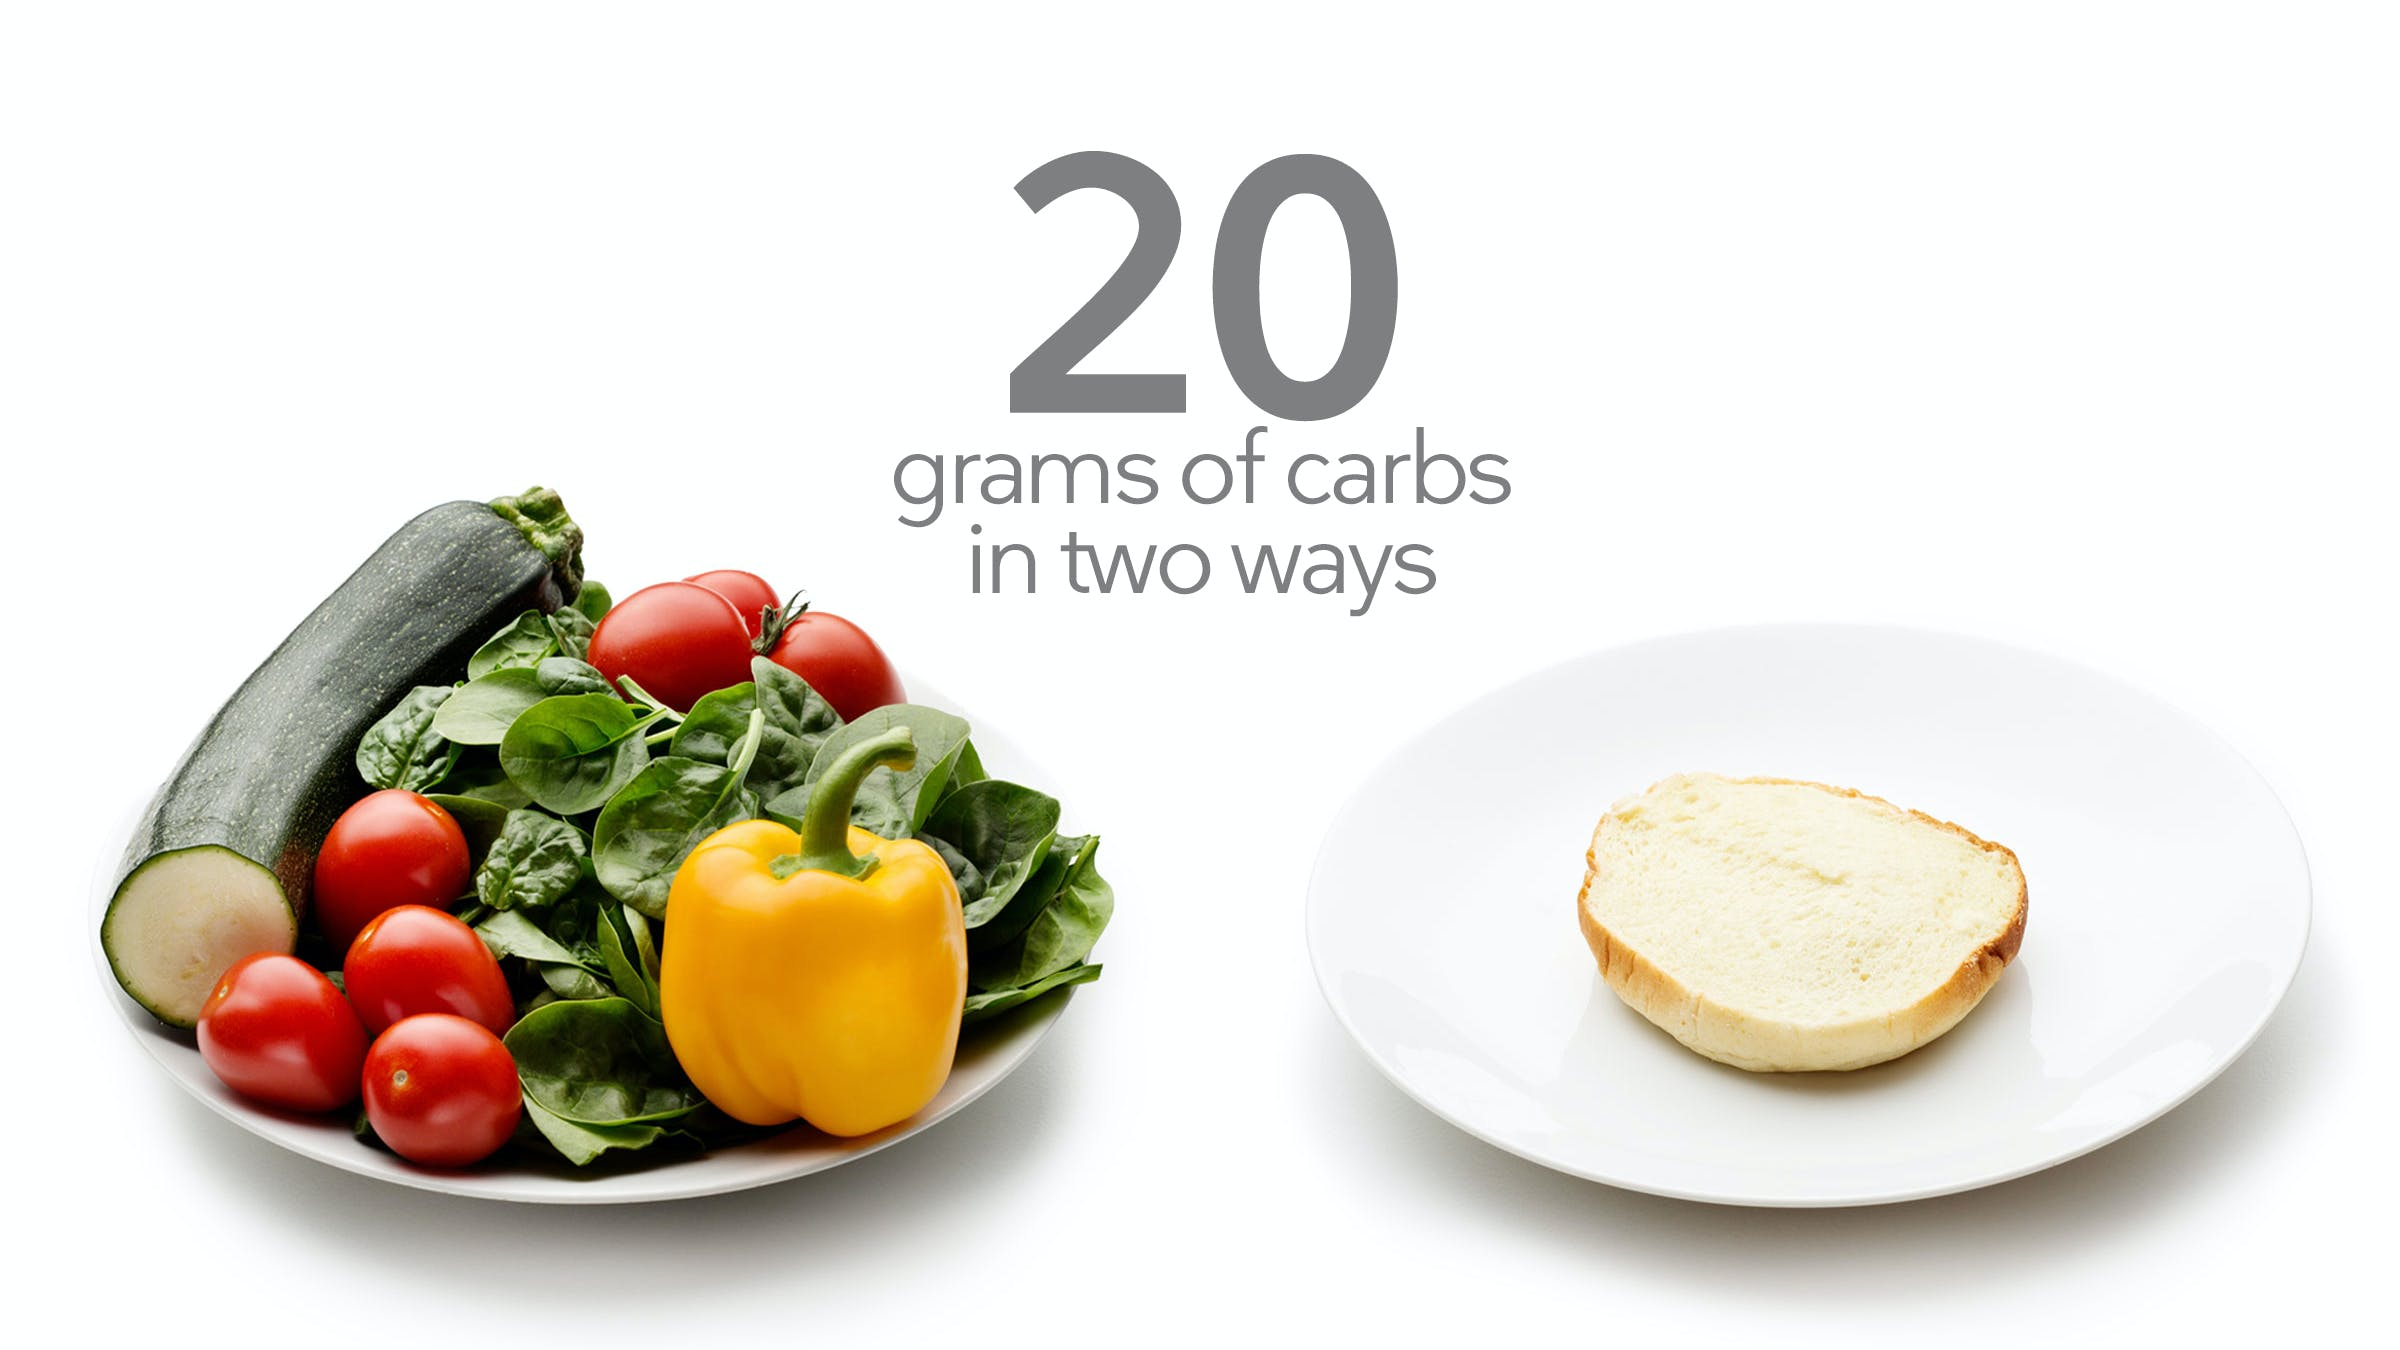 20 grams of carbs as vegetables or as white bread